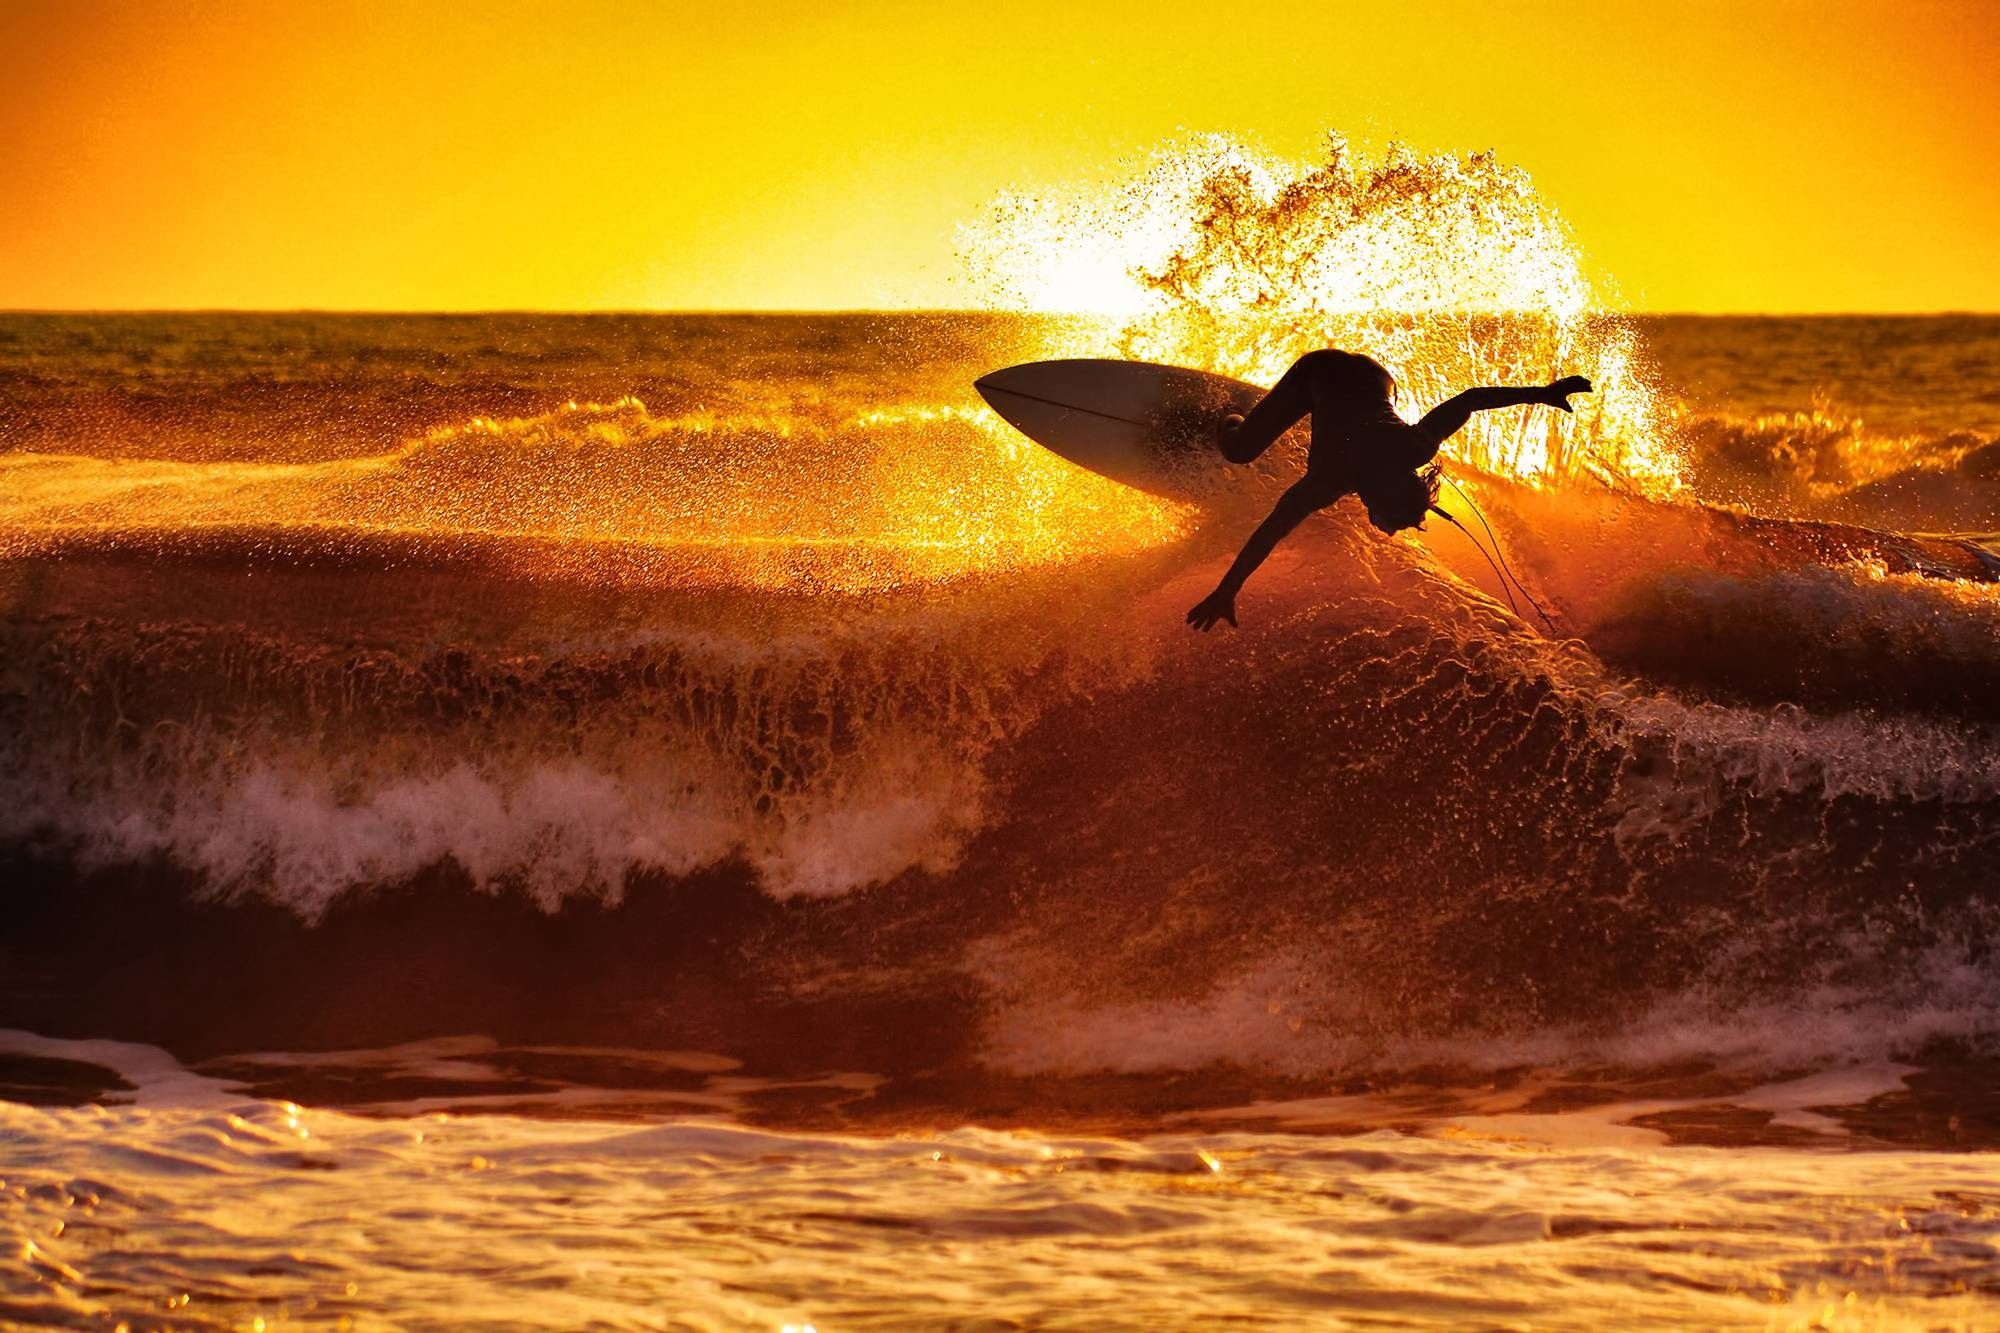 surfing waves sunset wallpaper and background | inspiration